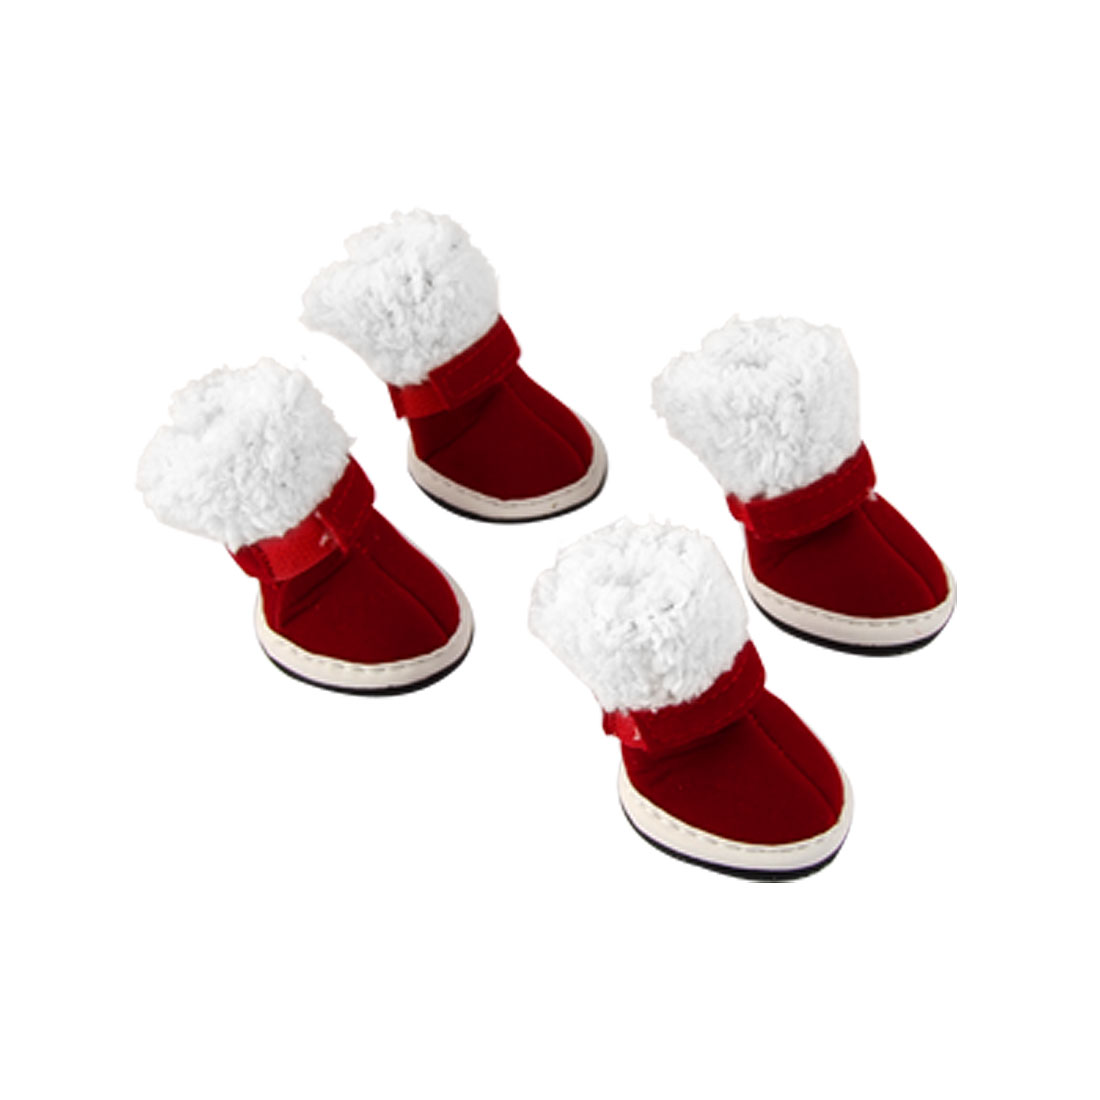 Pet Antislip Rubber Sole Red White Christmas Style Boots Shoes Size 4